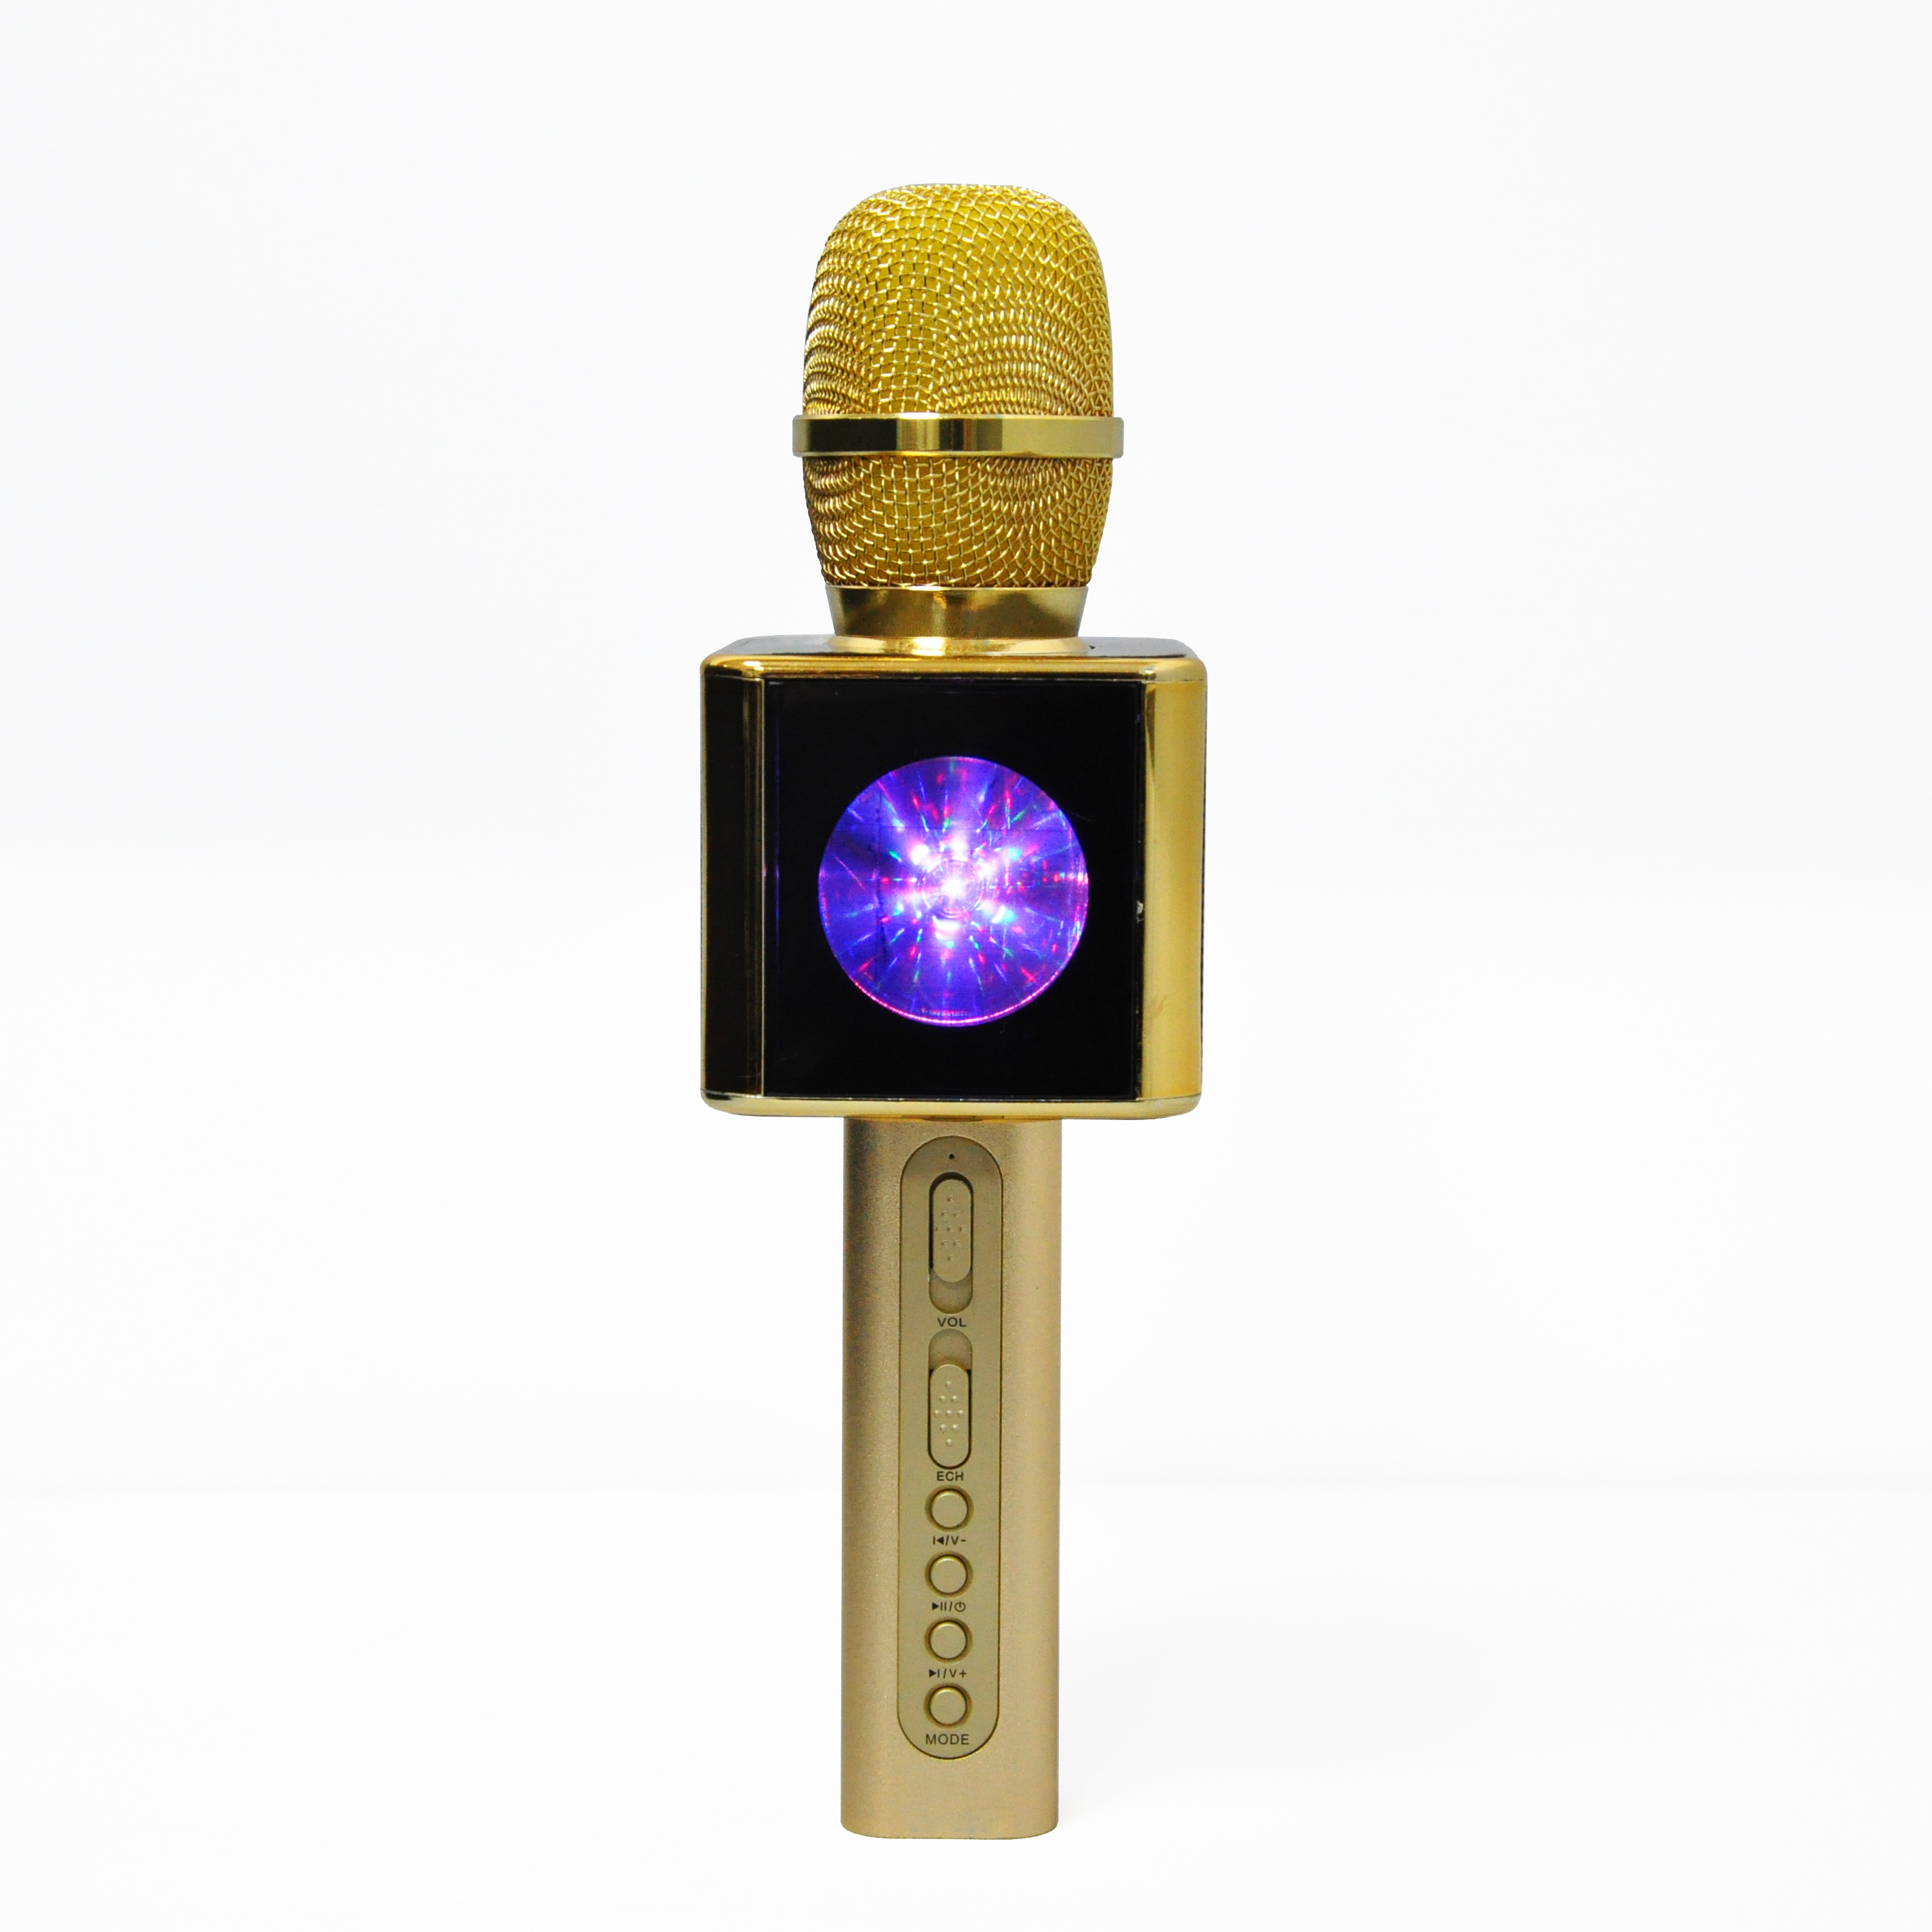 YS-13-CHEAPEST GOOD QUALITY GOLDEN blue tooth mic karaoke wireless microphone karaoke mic WITH LIGHT